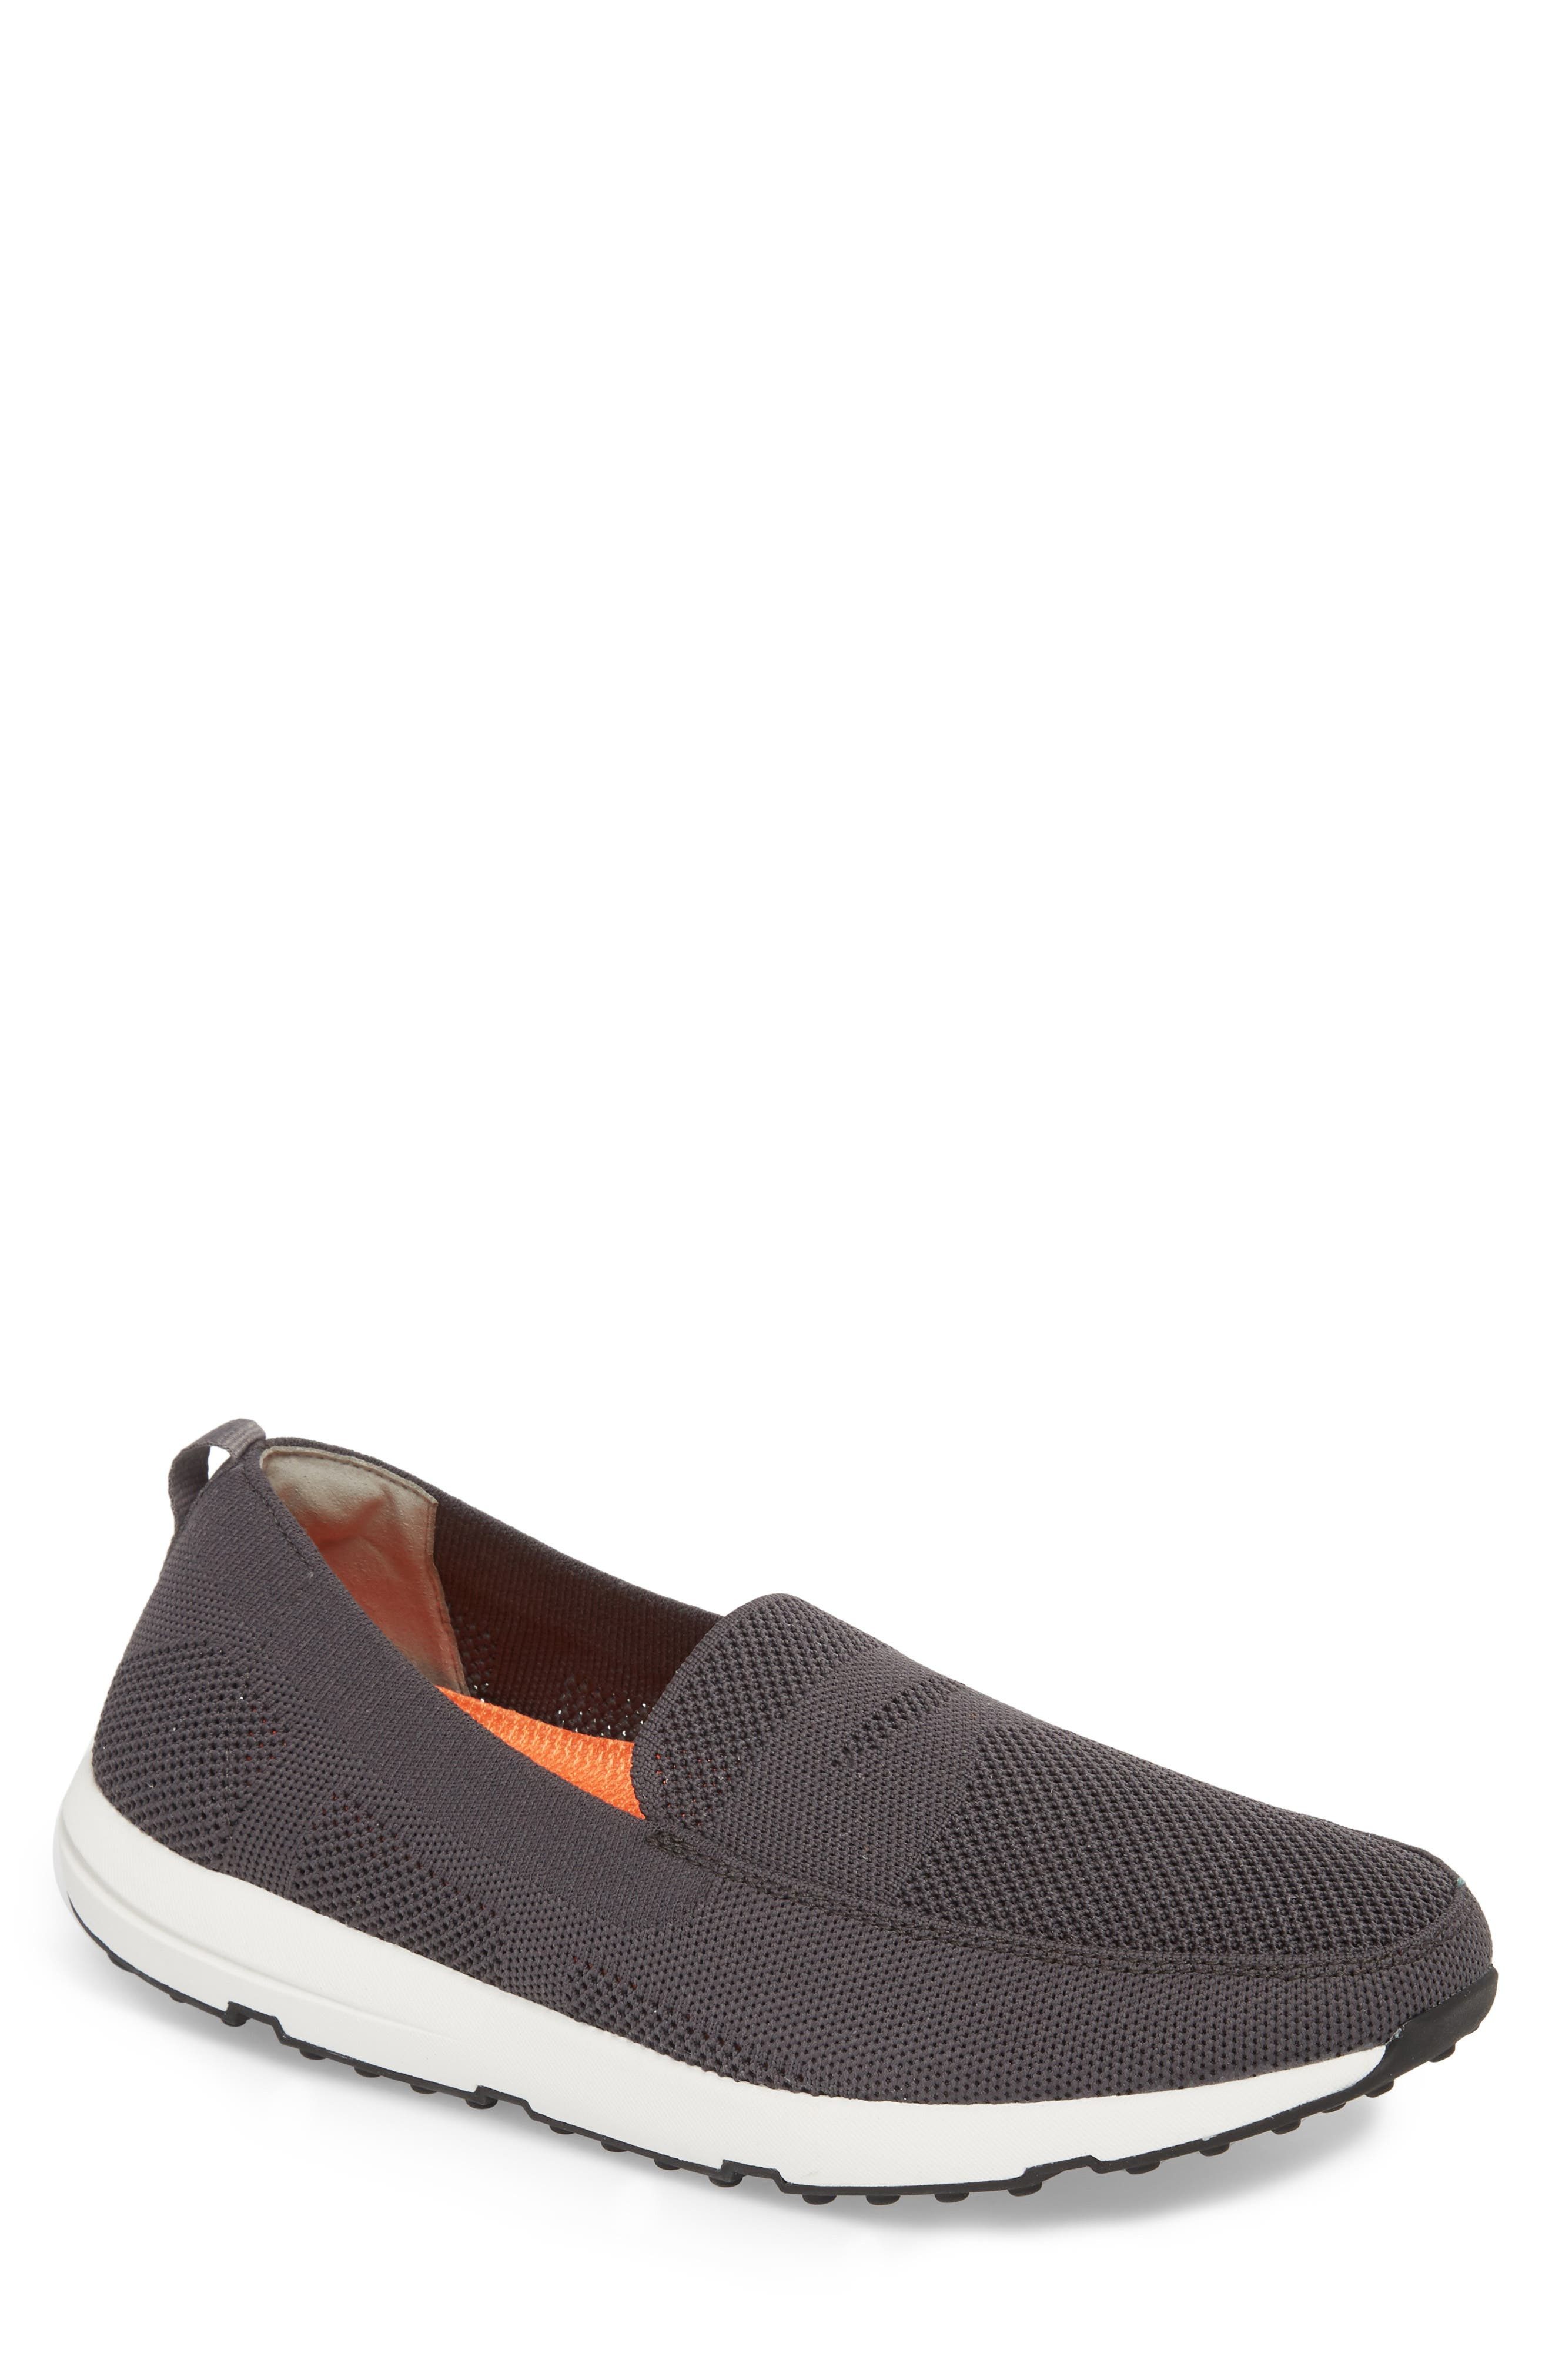 SWIMS,                             Breeze Leap Knit Penny Slip-On,                             Main thumbnail 1, color,                             020